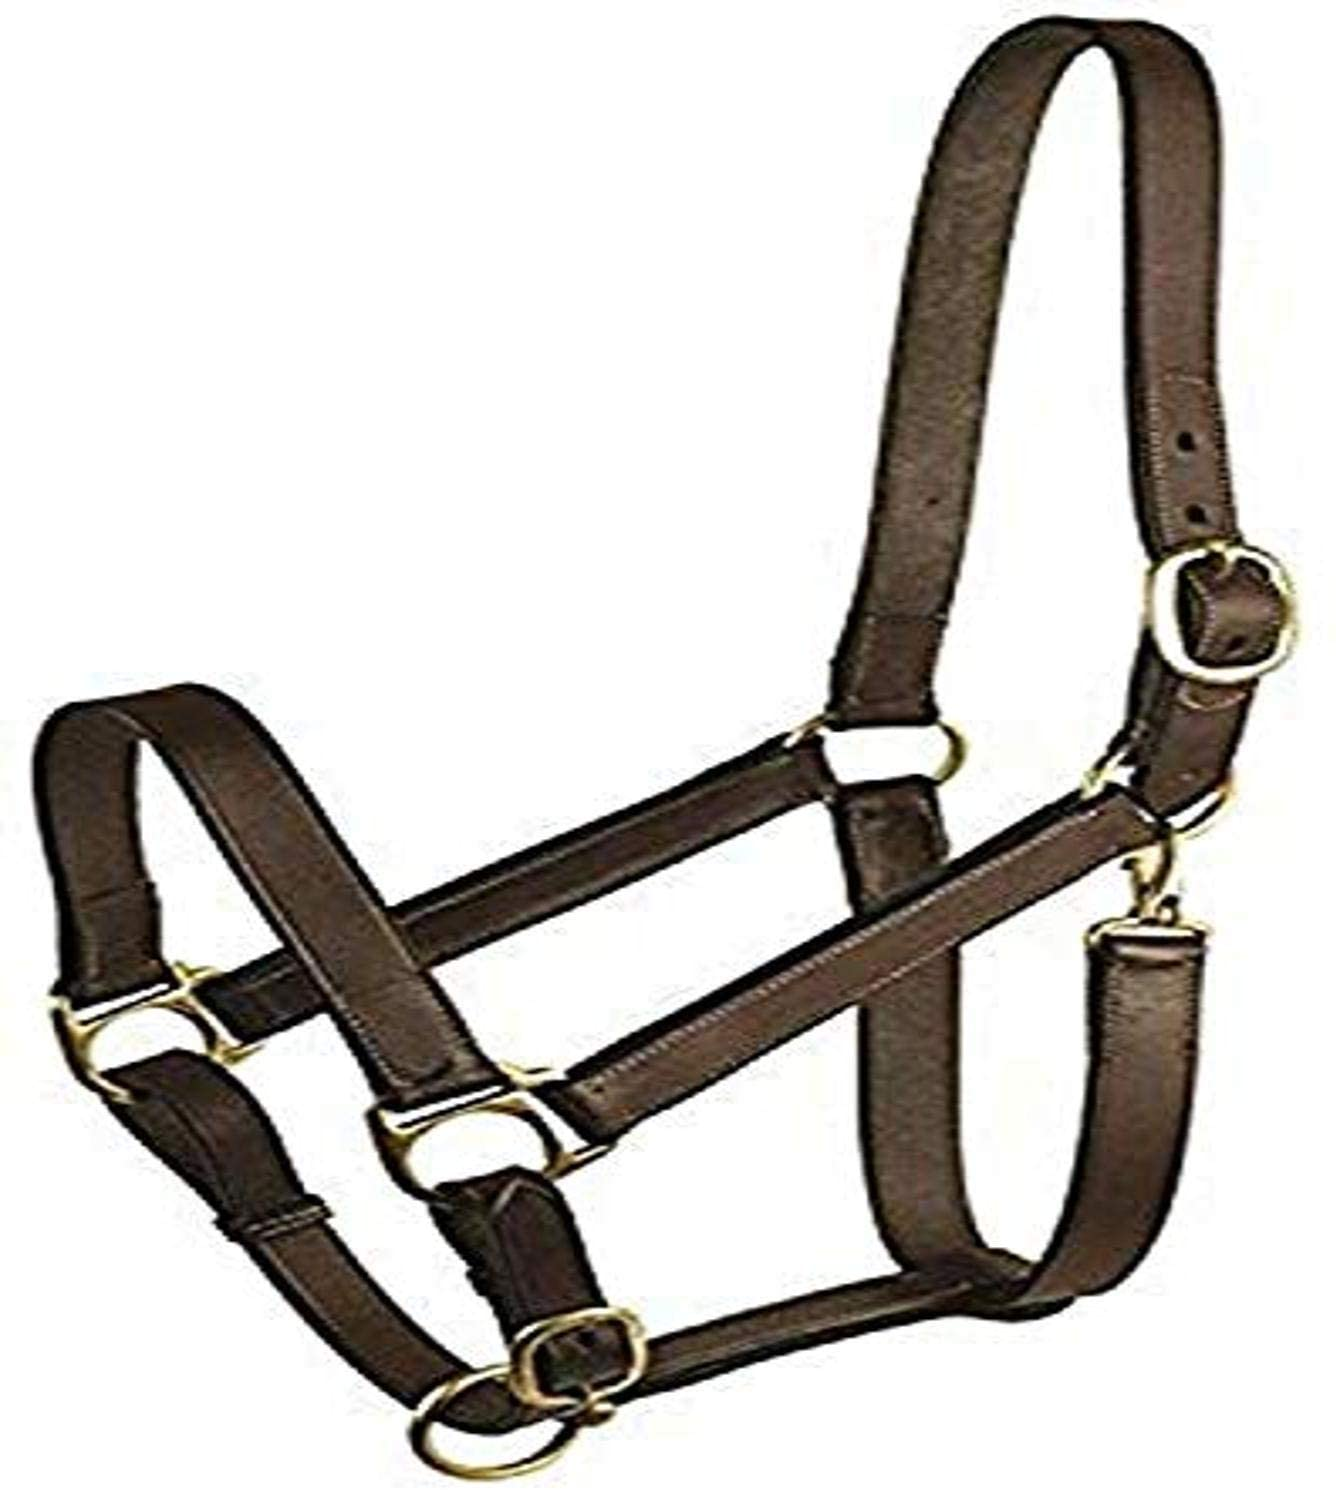 Gatsby Leather 282960 Stable Halter with Snap Havanna Brown, Yearling